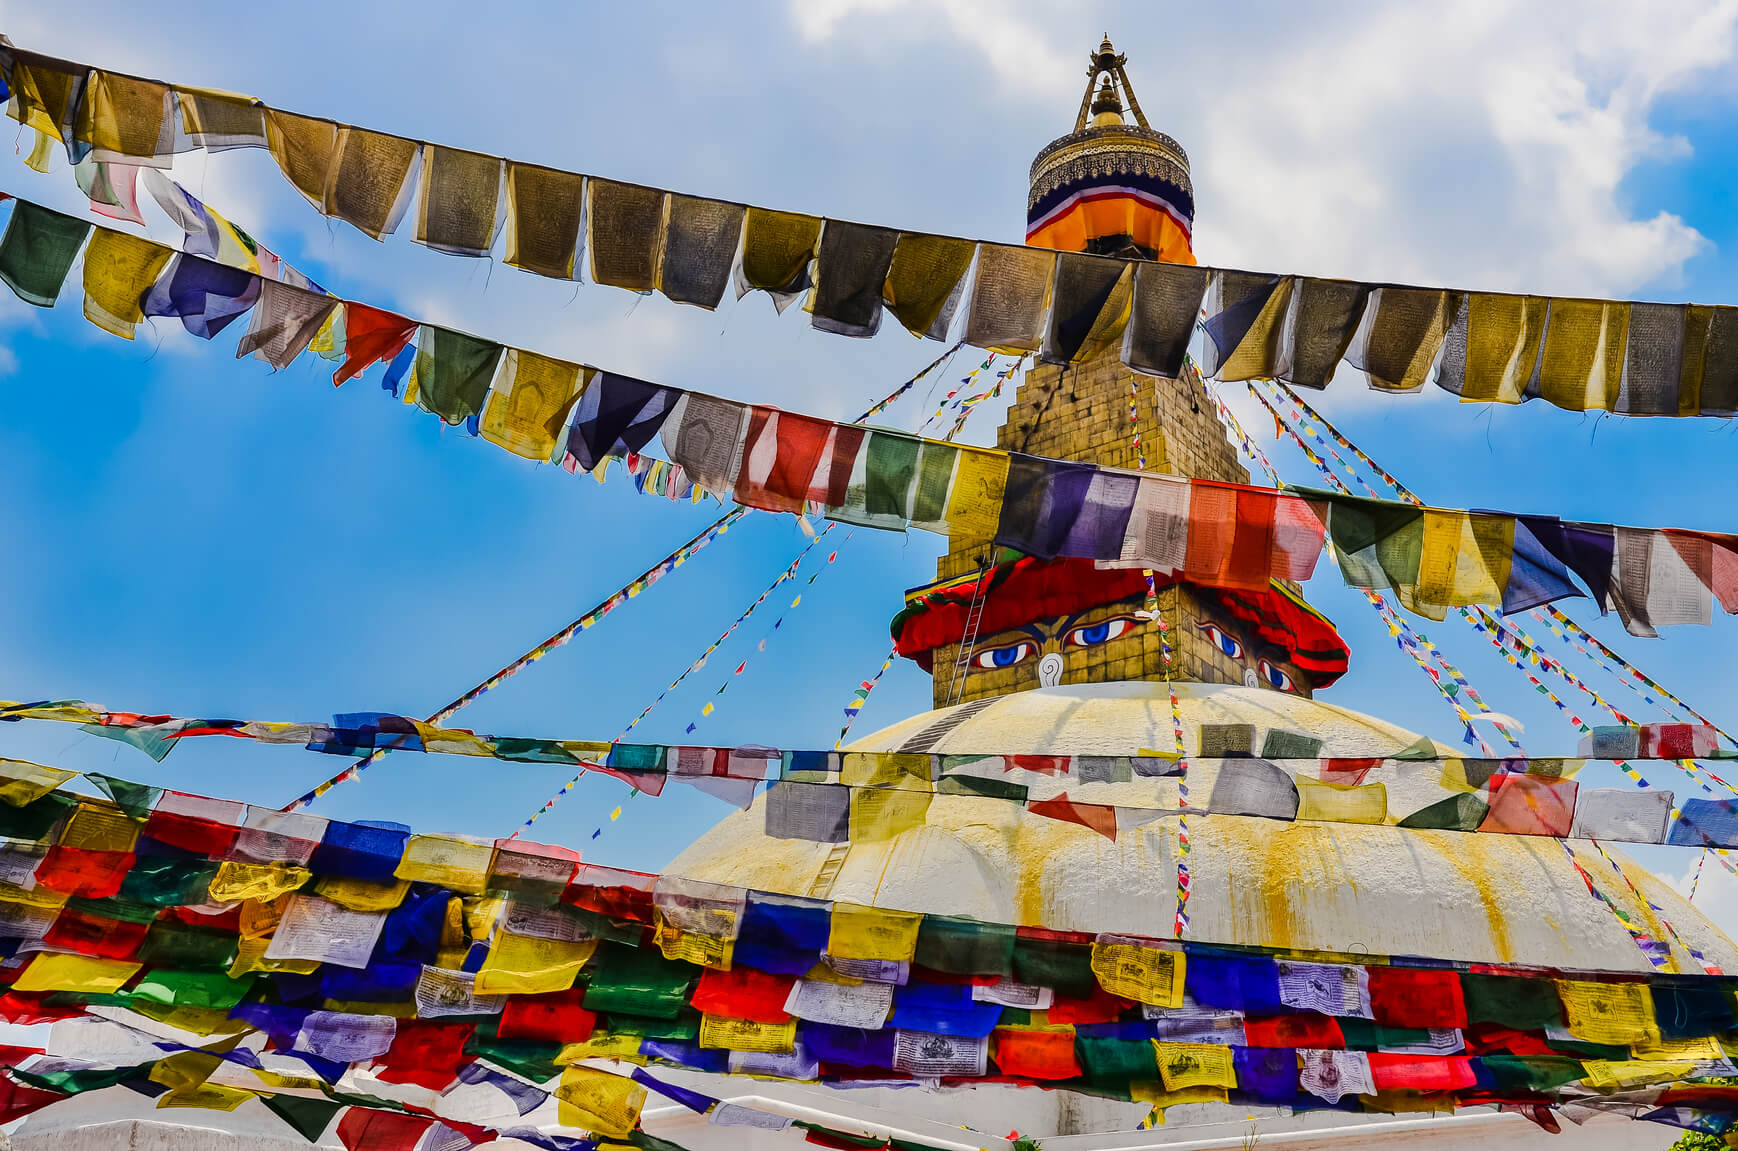 London, UK to Kathmandu, Nepal for only £358 roundtrip